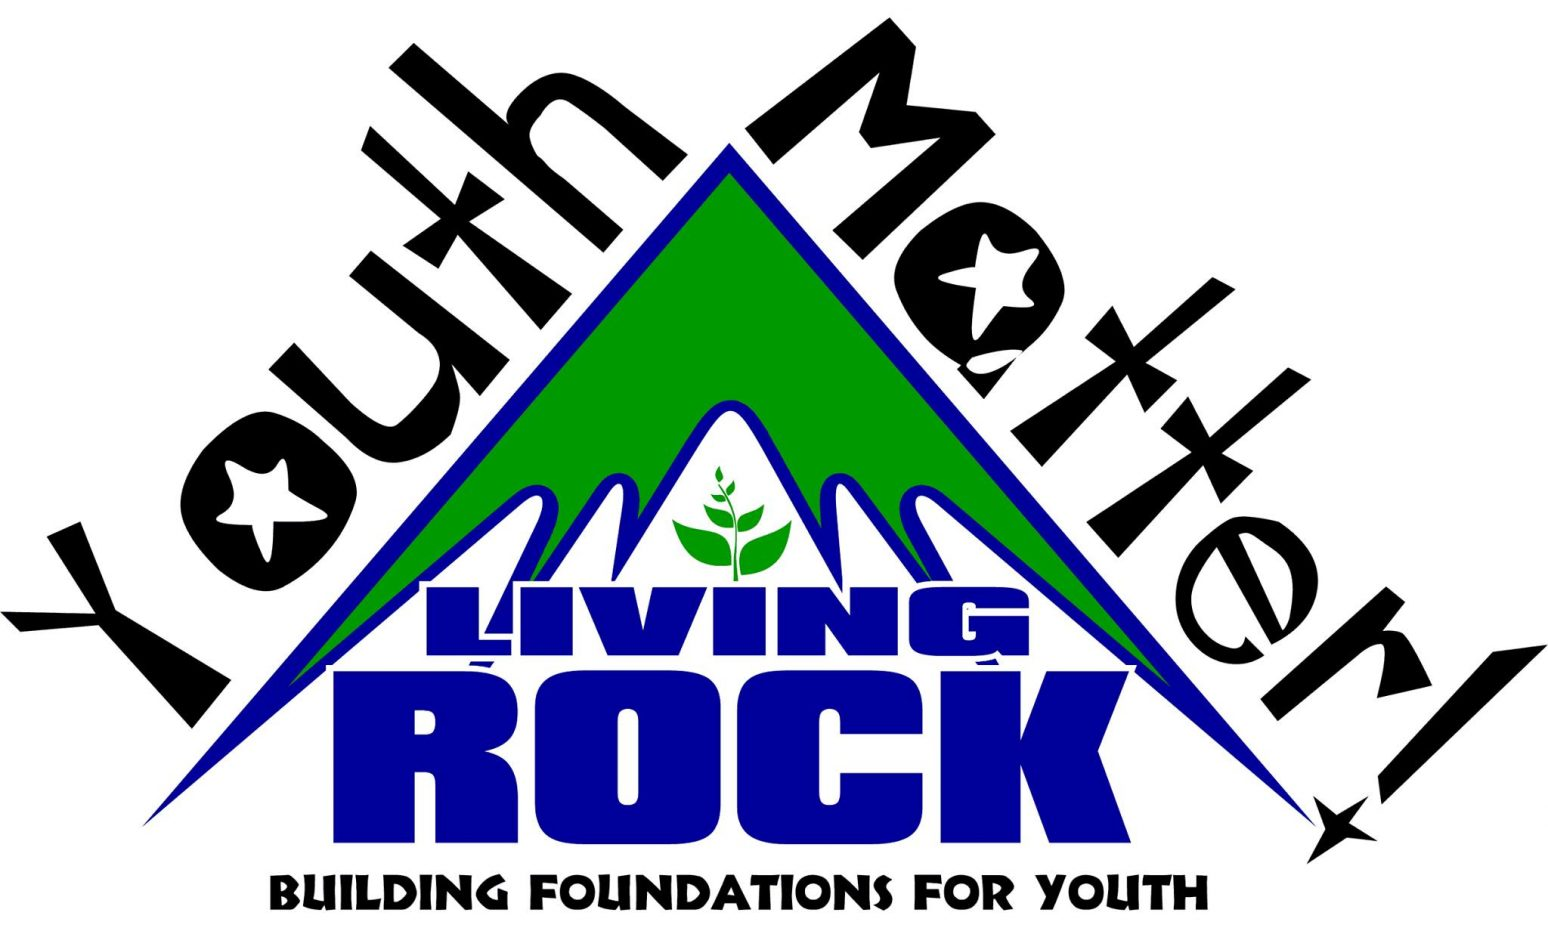 6th Annual food drive in support of Living Rock Ministries for at risk youth